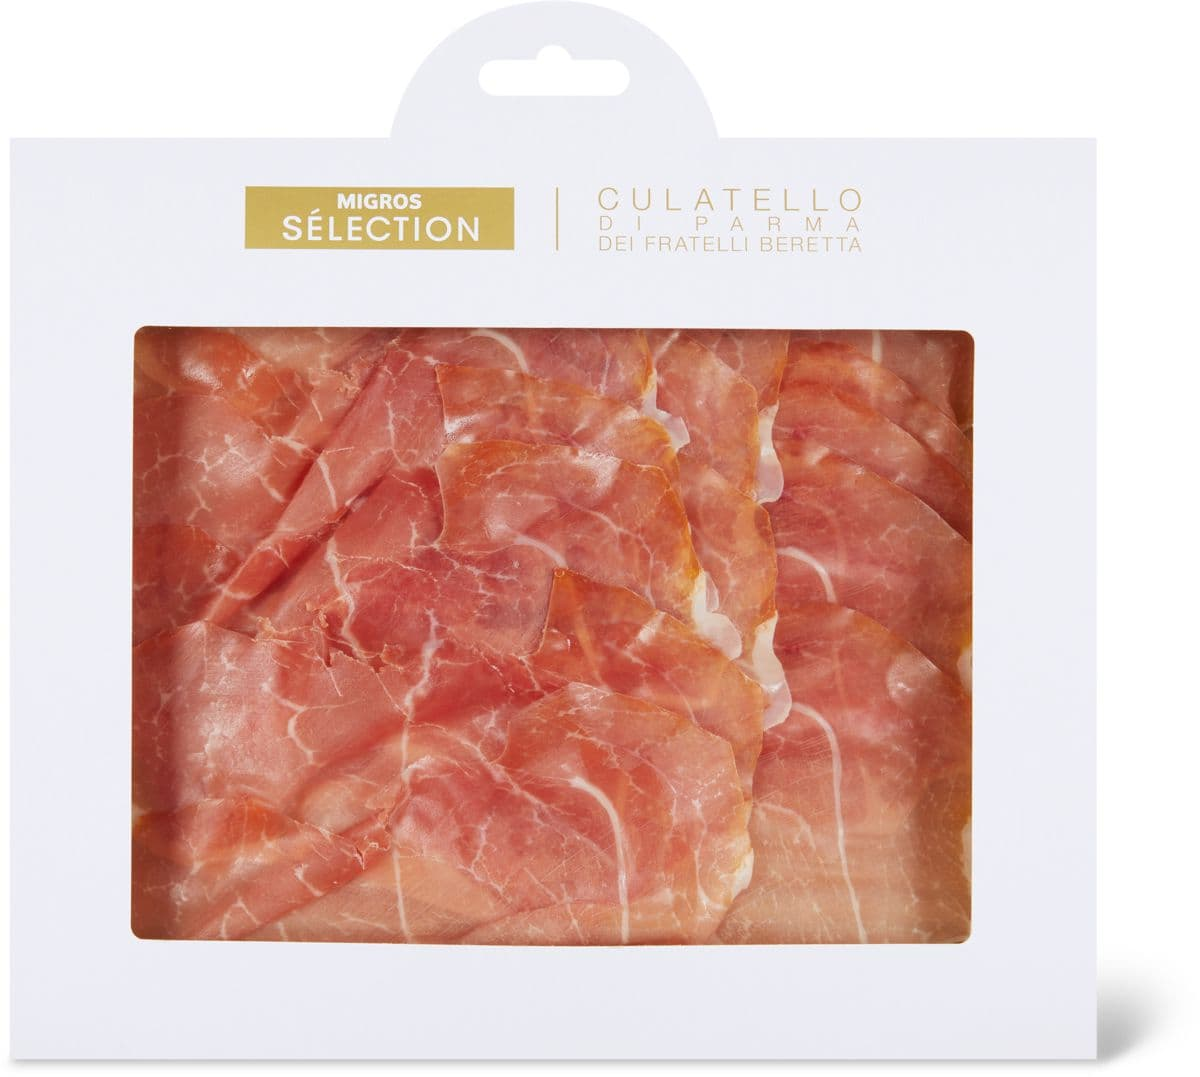 Sélection Culatello di Parma dei fratelli Beretta